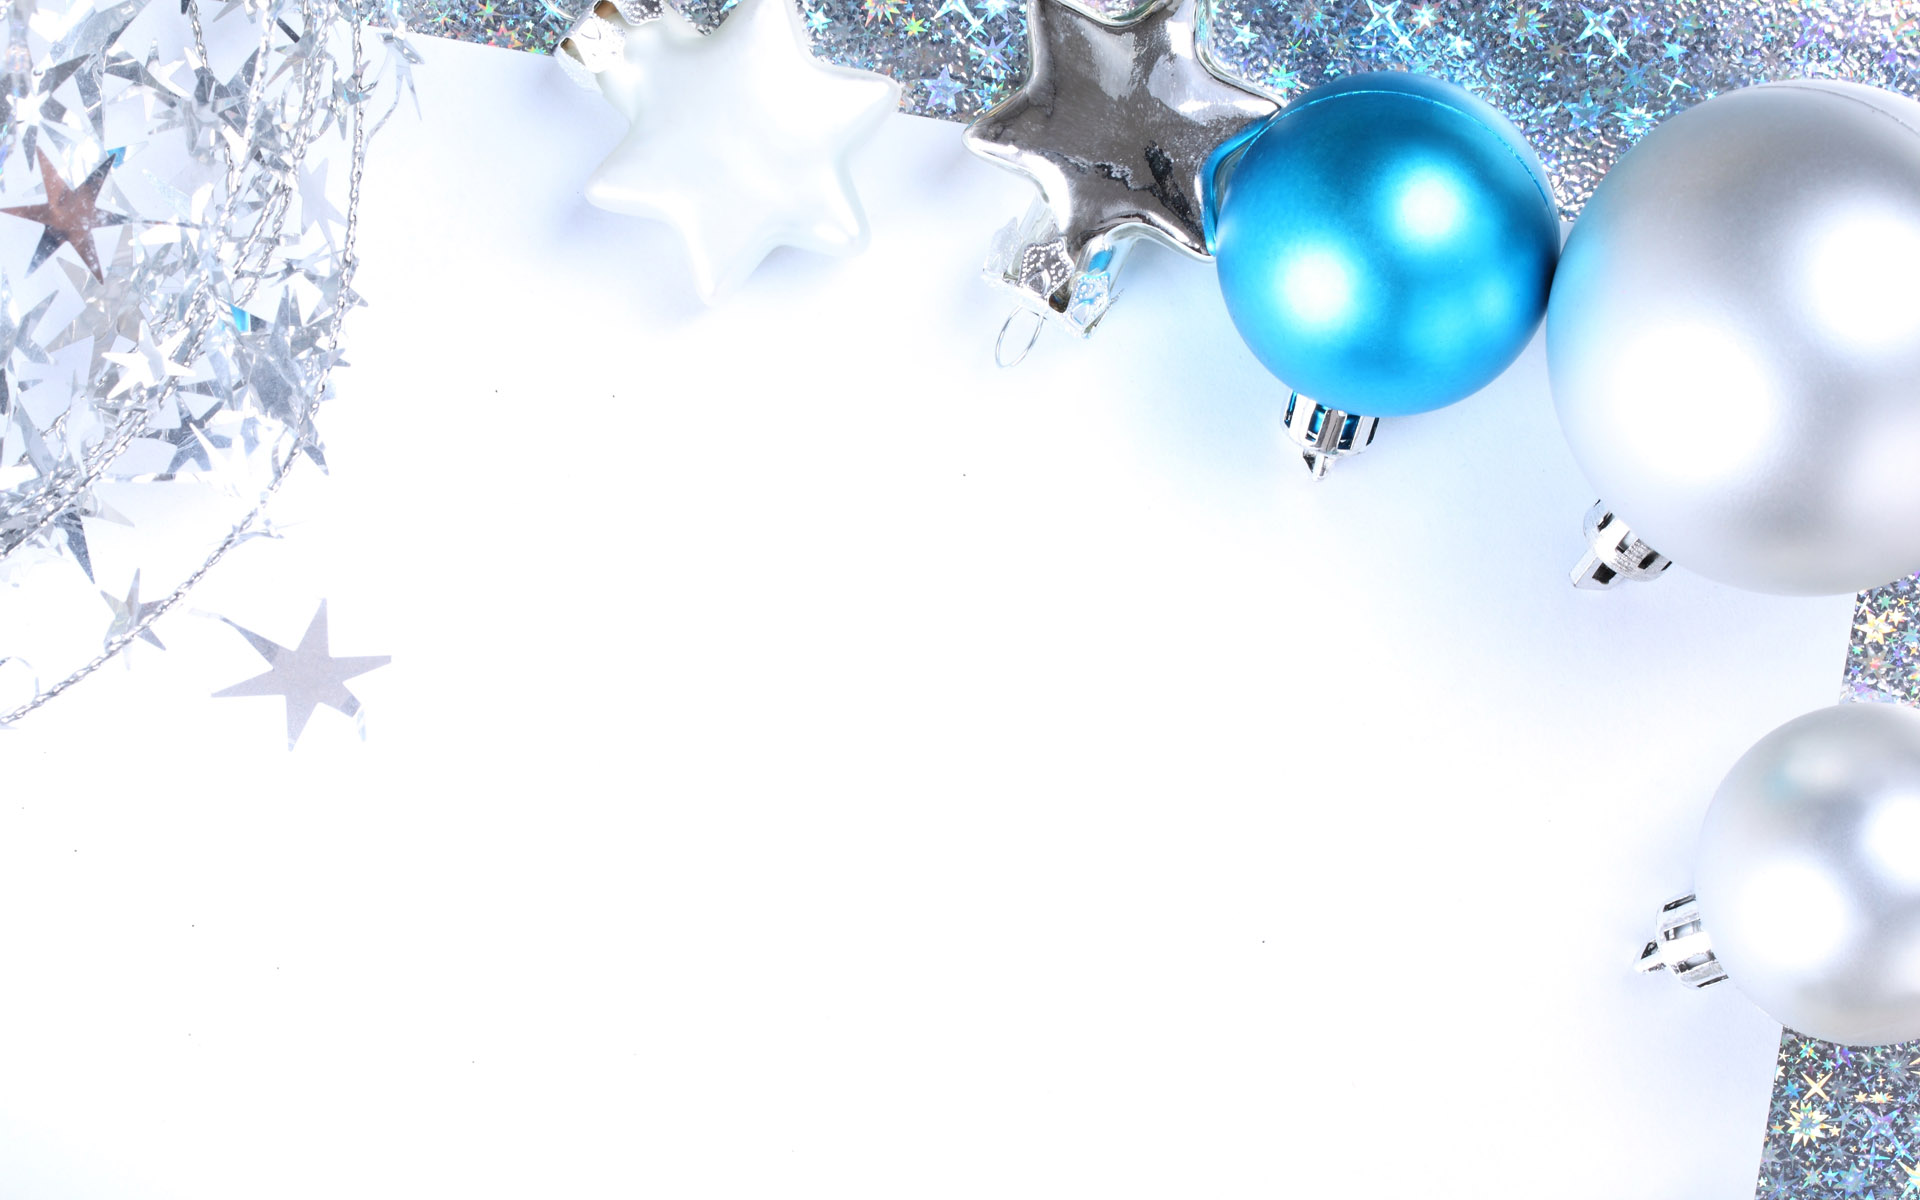 Free Download Blue Christmas Background Wallpaper Images Amp Pictures Becuo 1920x1200 For Your Desktop Mobile Tablet Explore 68 Blue Christmas Background Blue Christmas Wallpaper Blue Christmas Tree Wallpaper